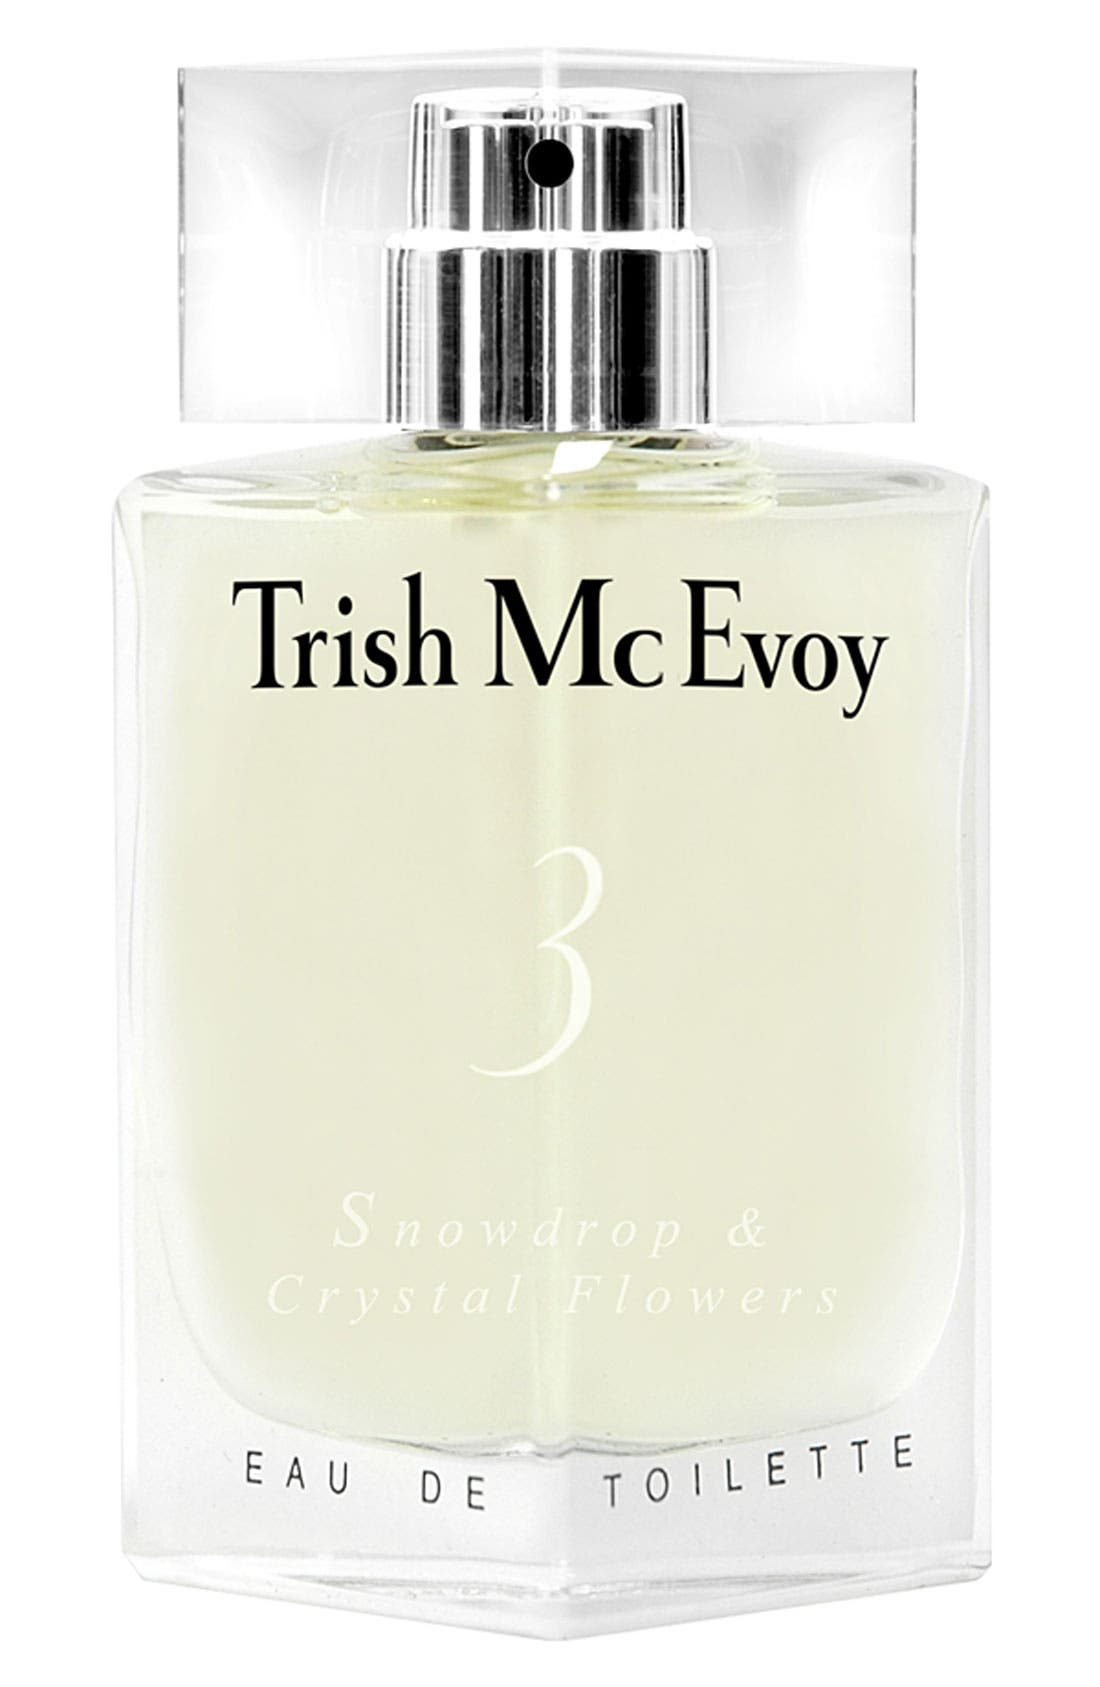 Trish McEvoy 'No. 3 Snowdrop & Crystal Flowers' Eau de Toilette